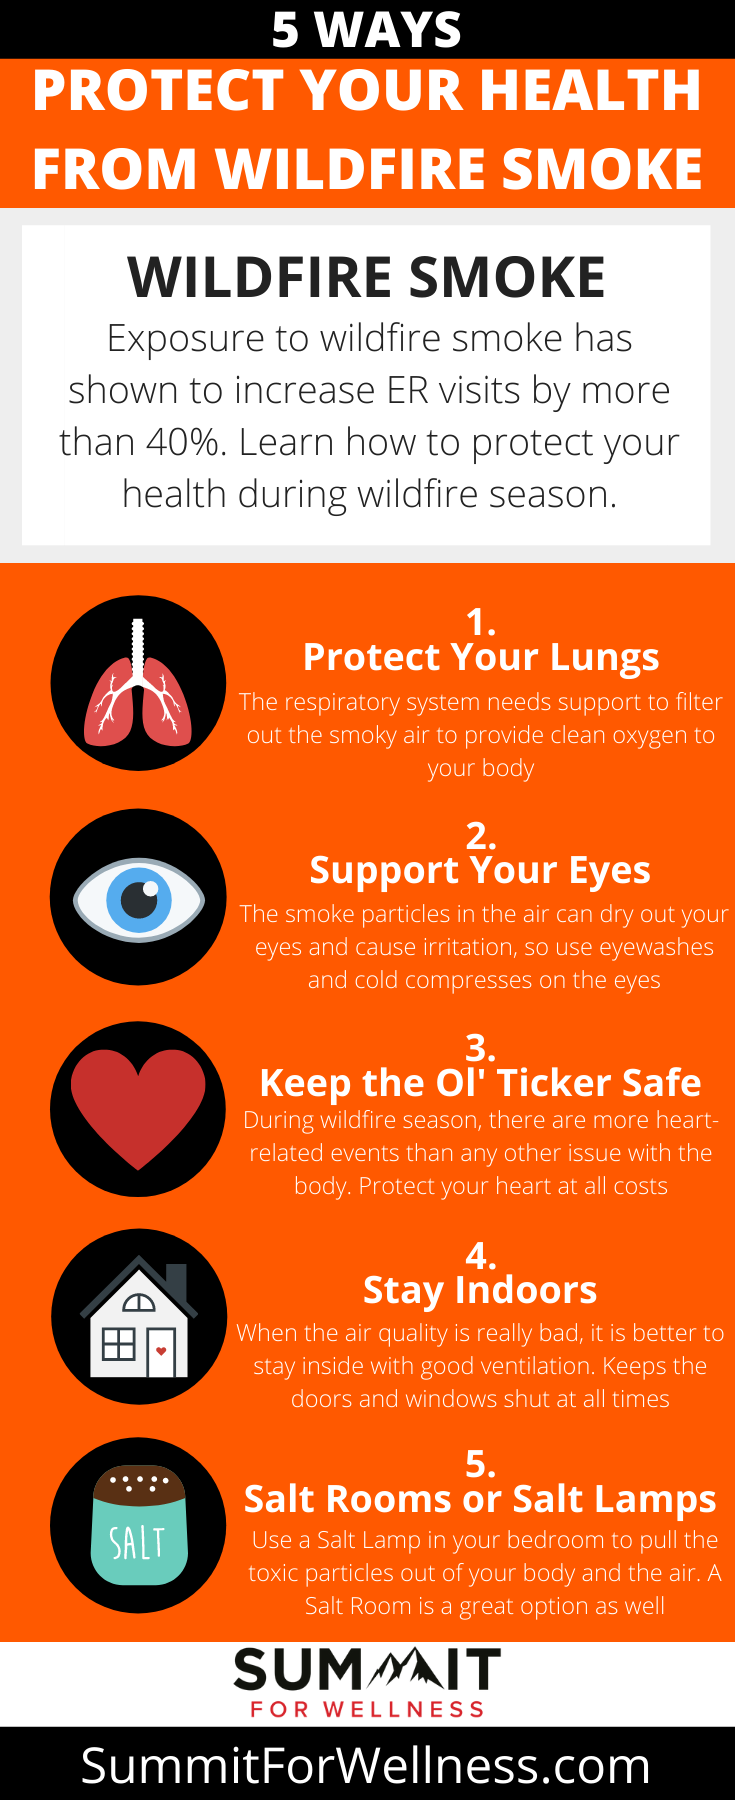 These 5 ways can protect your health from exposure to the wildfire smoke.